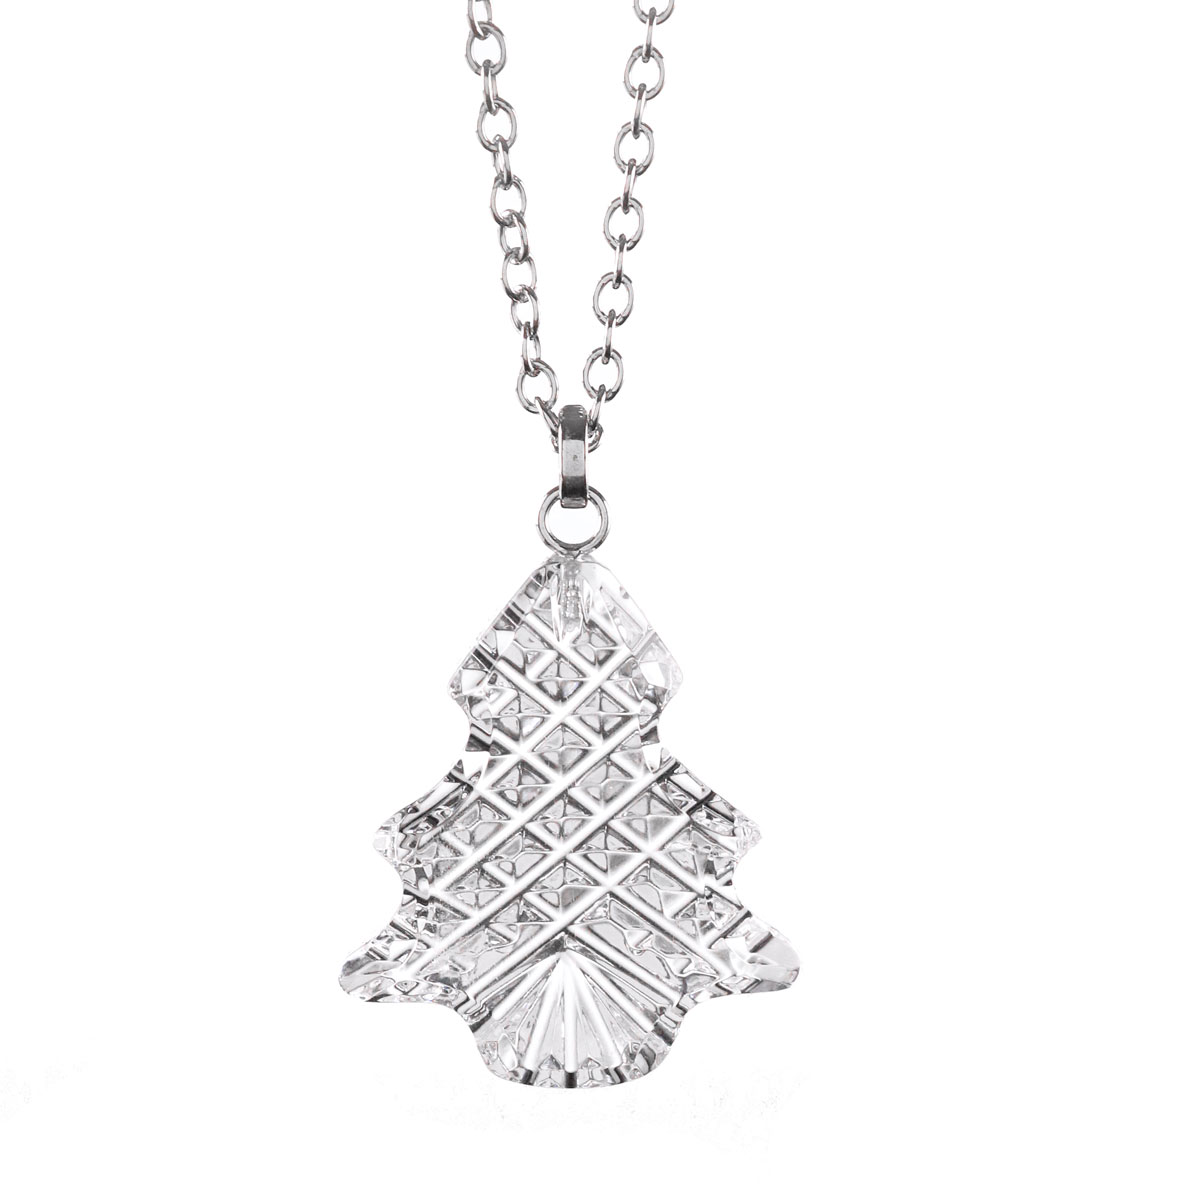 Cashs Ireland, Crystal Christmas Snowy Tree Pendant Necklace